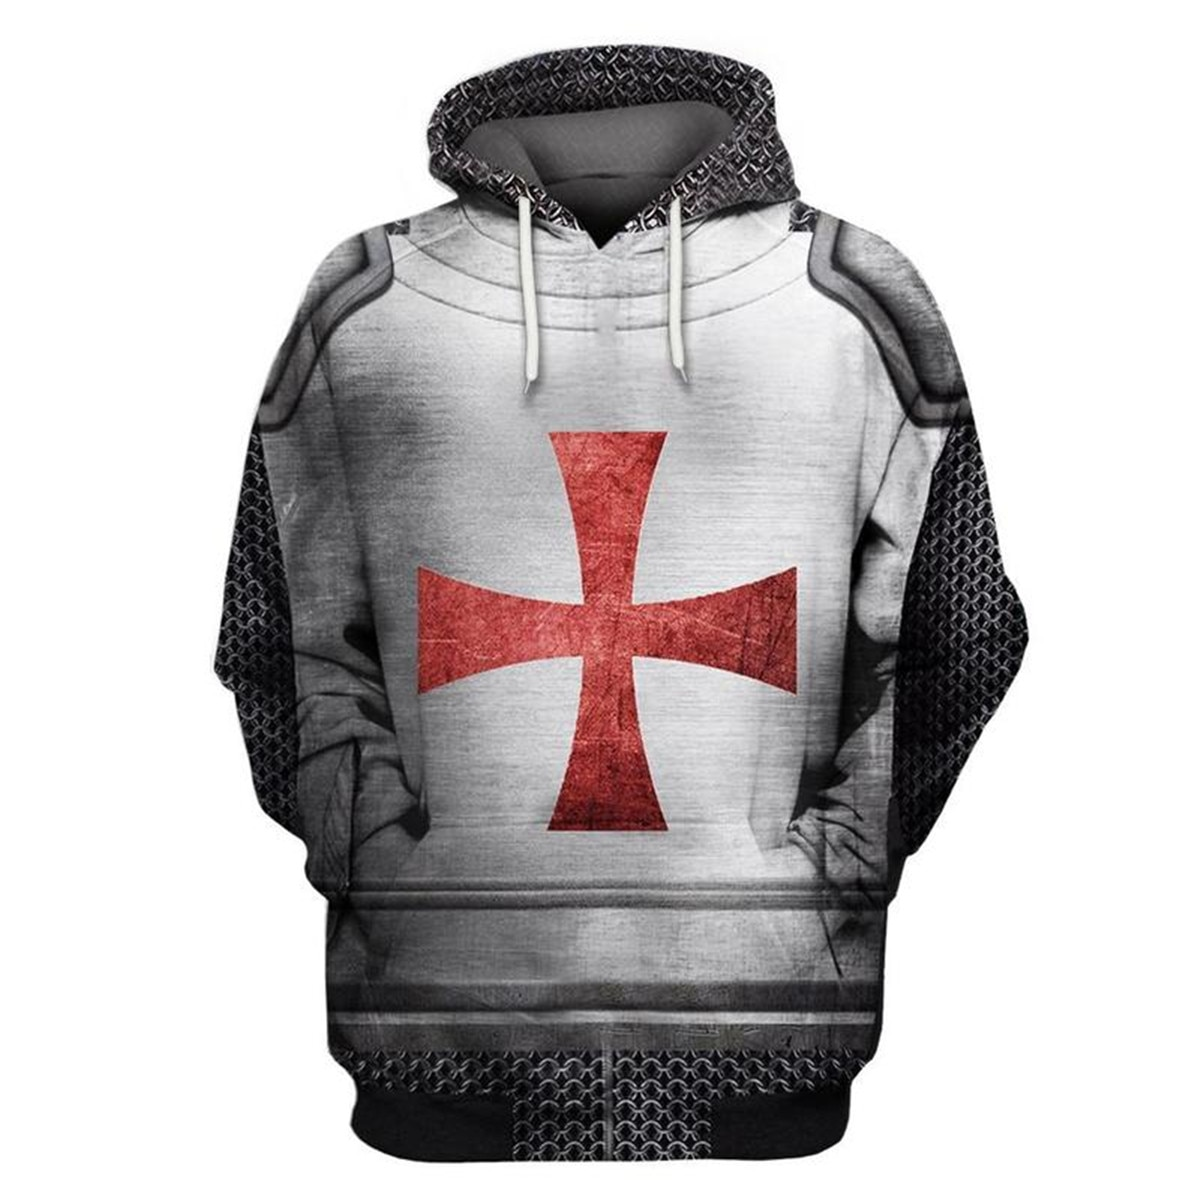 Knights Templar Hoodies For Men 3D All Over Printed Fashion Spring/Autumn Casual Unisex Pullover Hooded Harajuku Streetwear